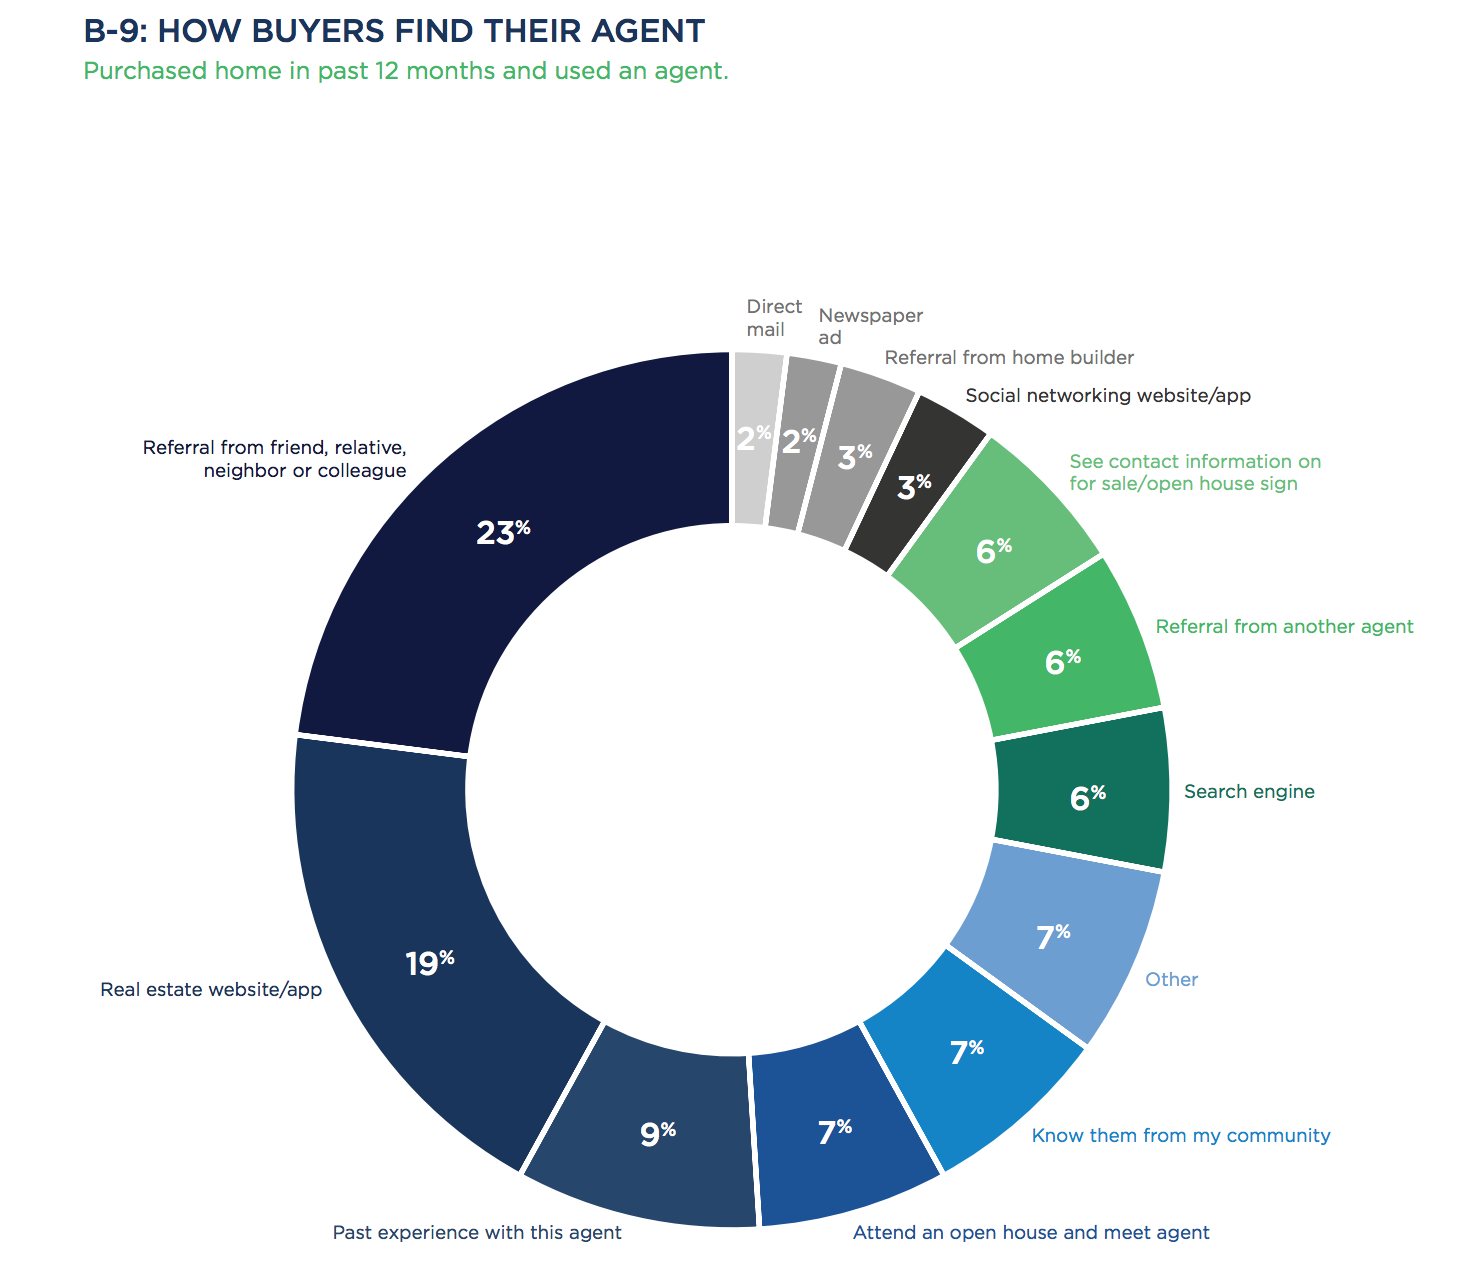 Zillow Real Estate Ct: Only 9% Of Buyers Find Agents Online, The Same As 10 Years